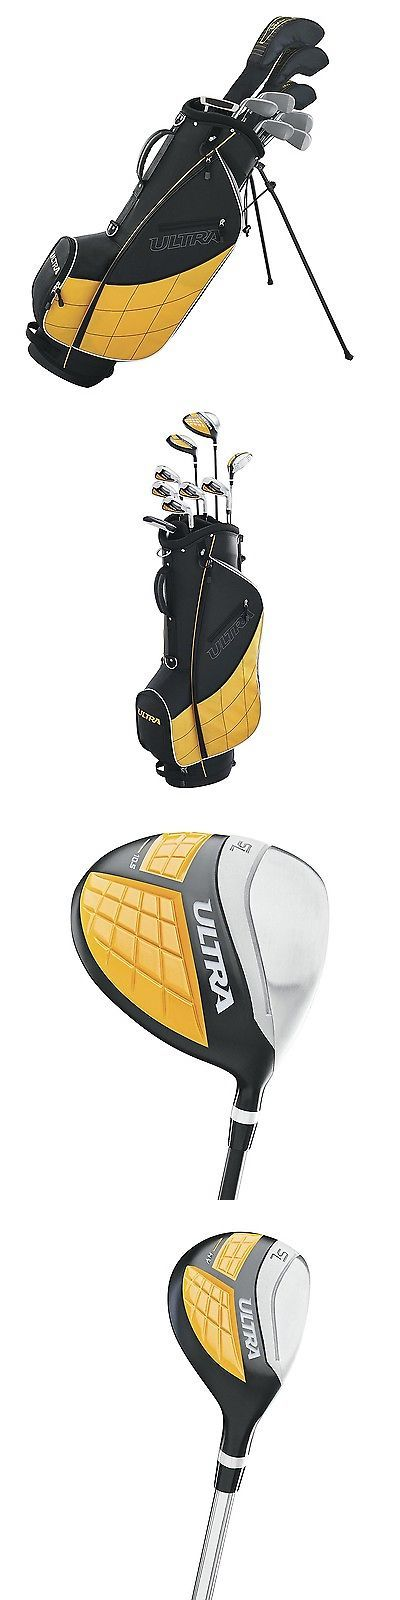 Golf Clubs 50127: Wilson Ultra 2017 Men S Complete 14 Piece Right Handed Golf Club Set And Stand Bag -> BUY IT NOW ONLY: $249.95 on eBay!